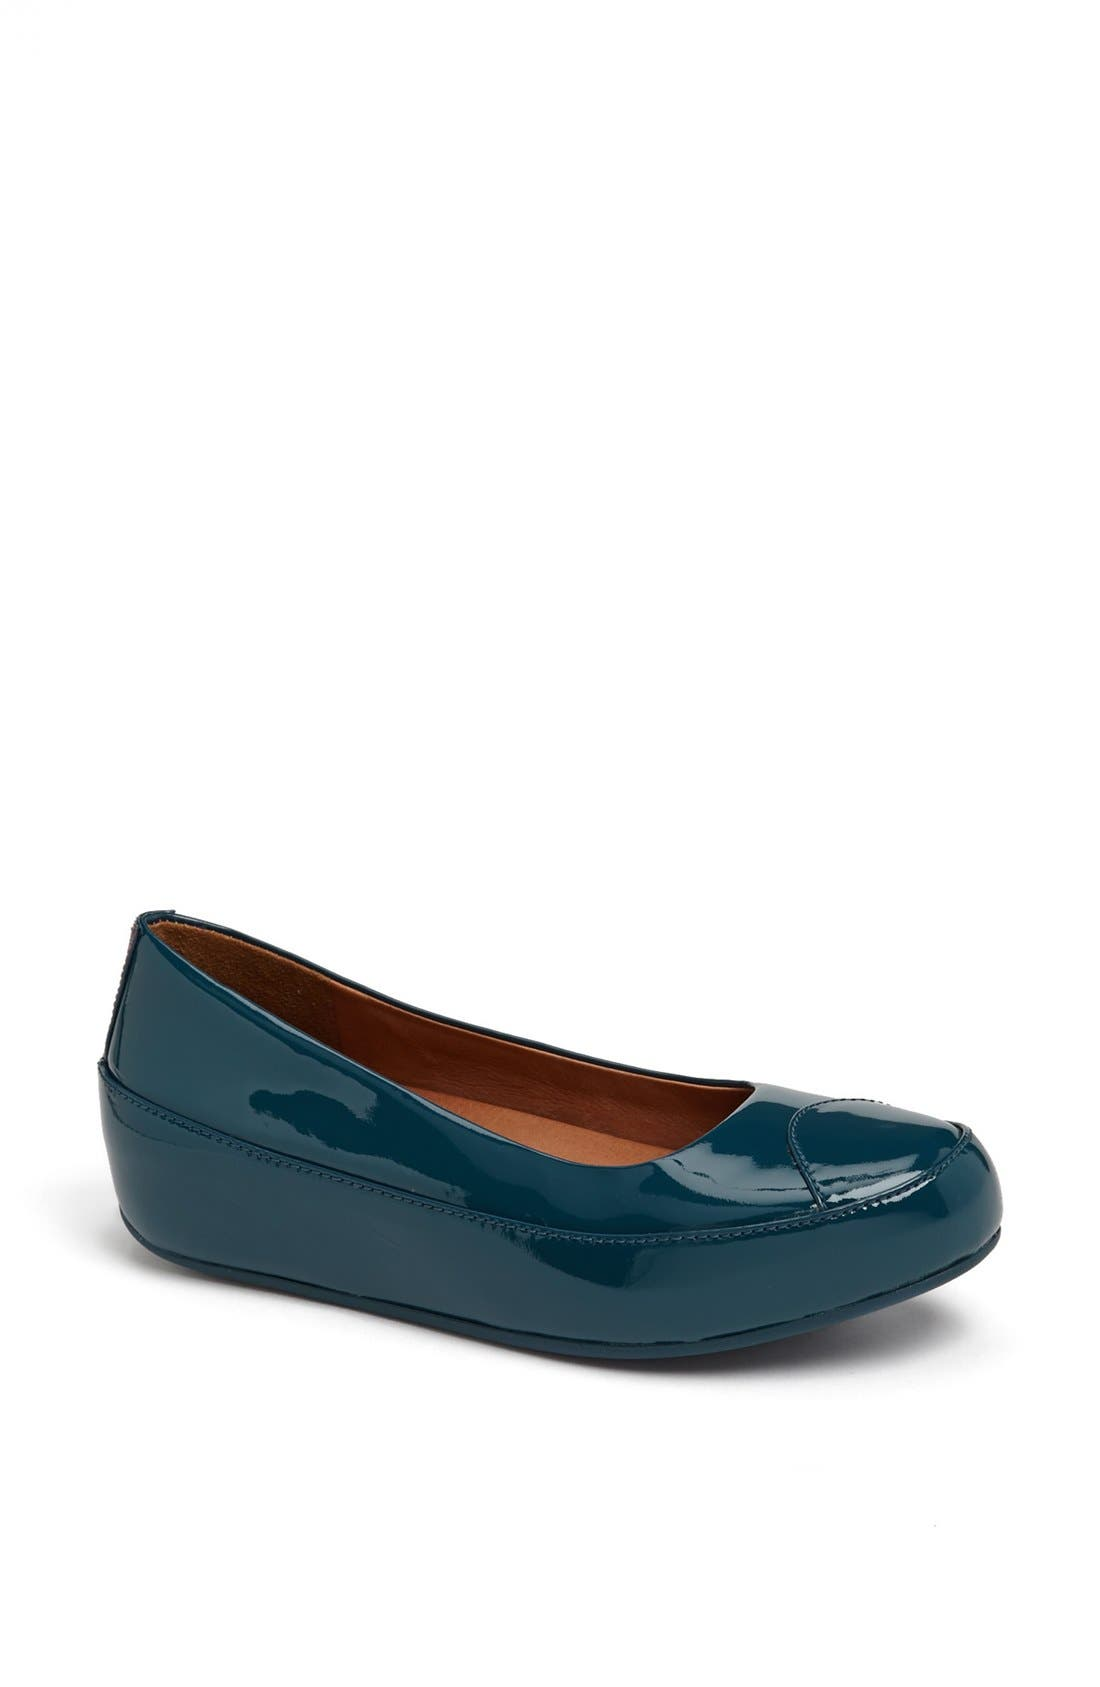 Alternate Image 1 Selected - FitFlop 'Dué™' Patent Flat